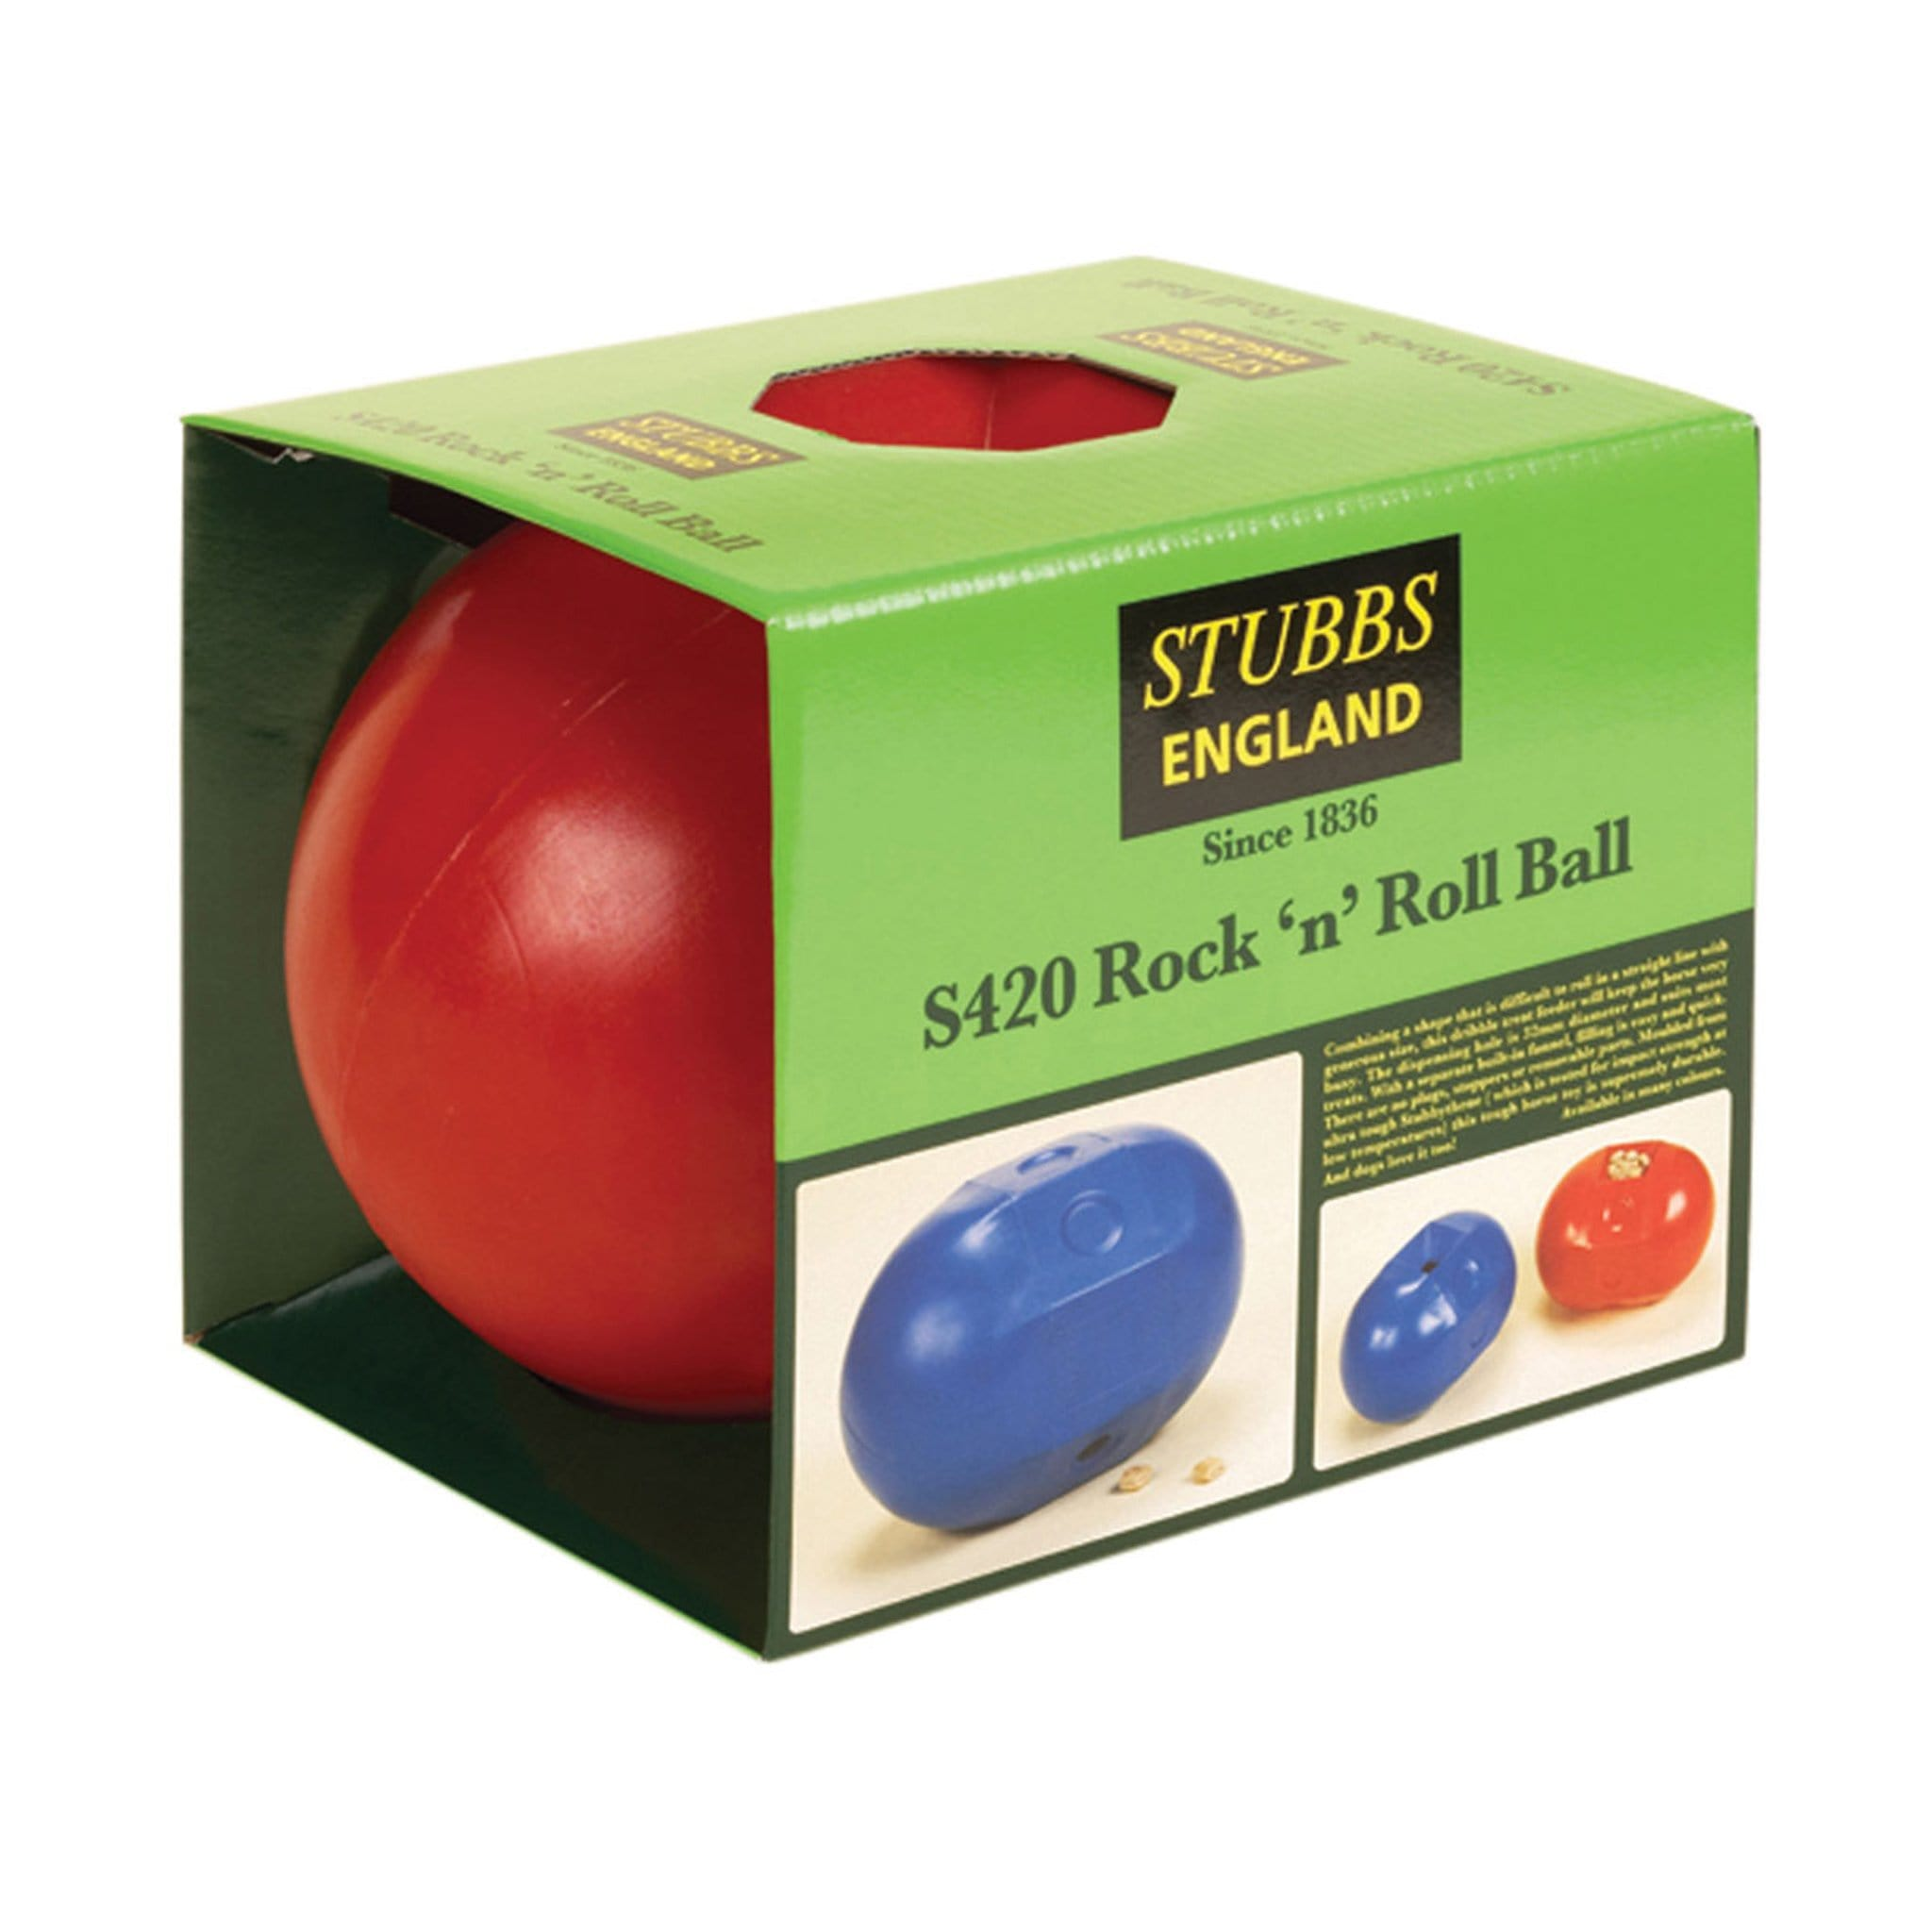 Stubbs Rock N Roll Ball in Packaging 7771